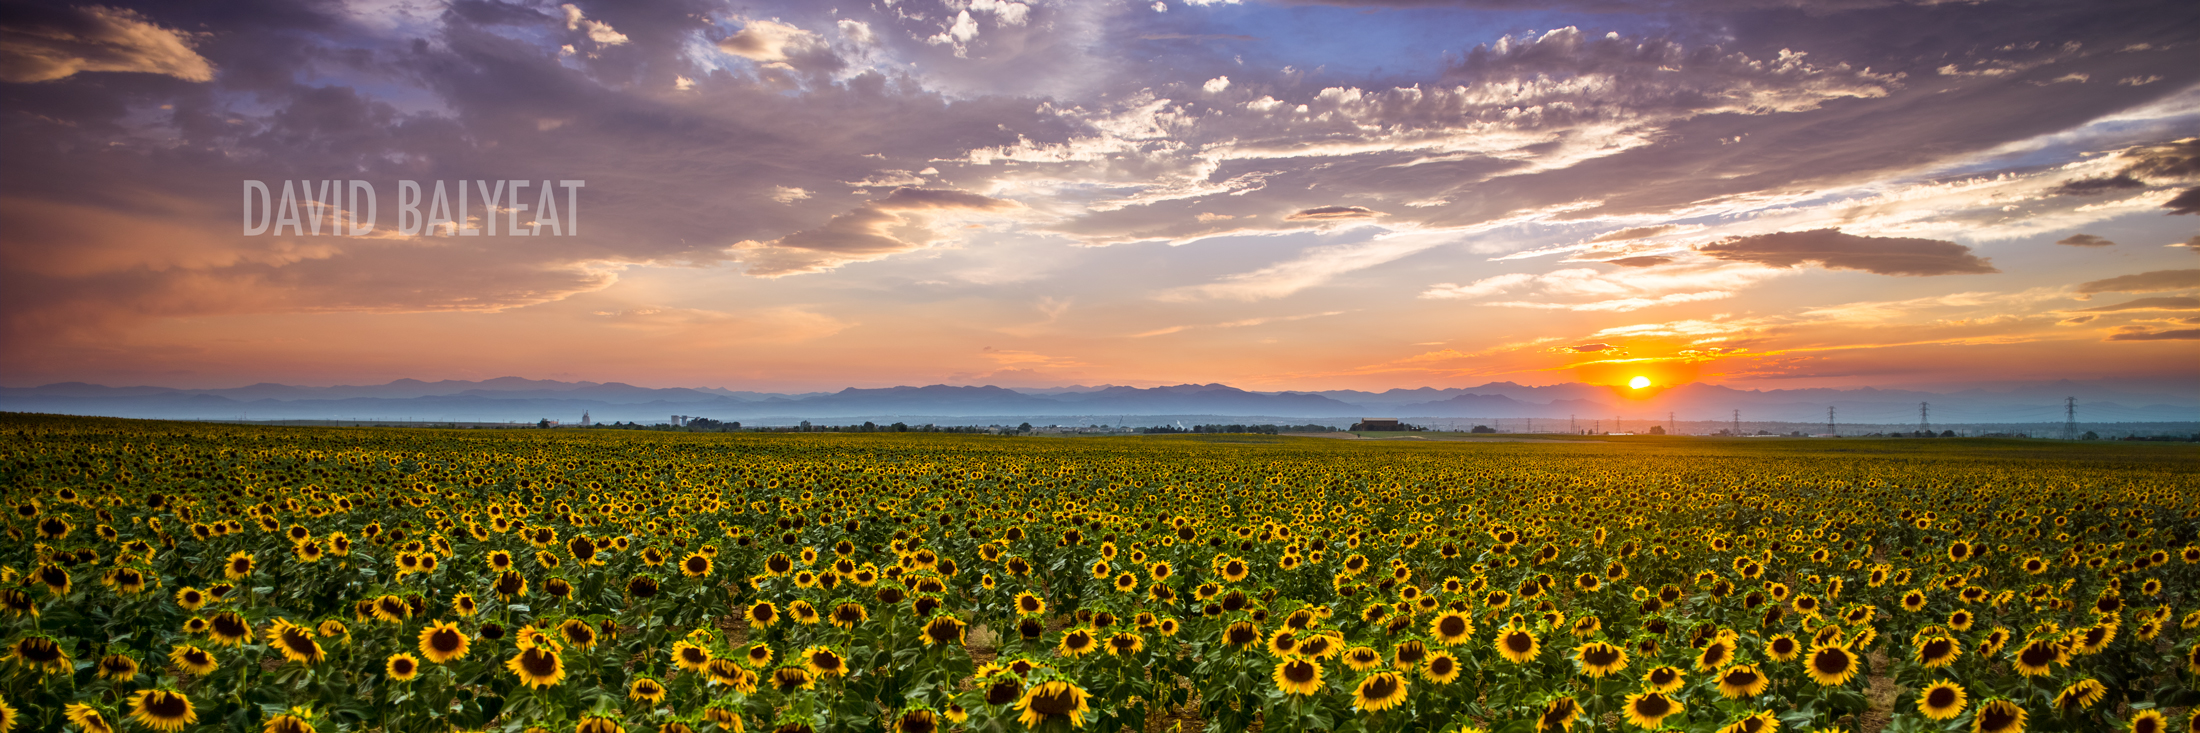 Sunflowers Colorado summer panoramic Denver sunset high-definition HD professional landscape photography